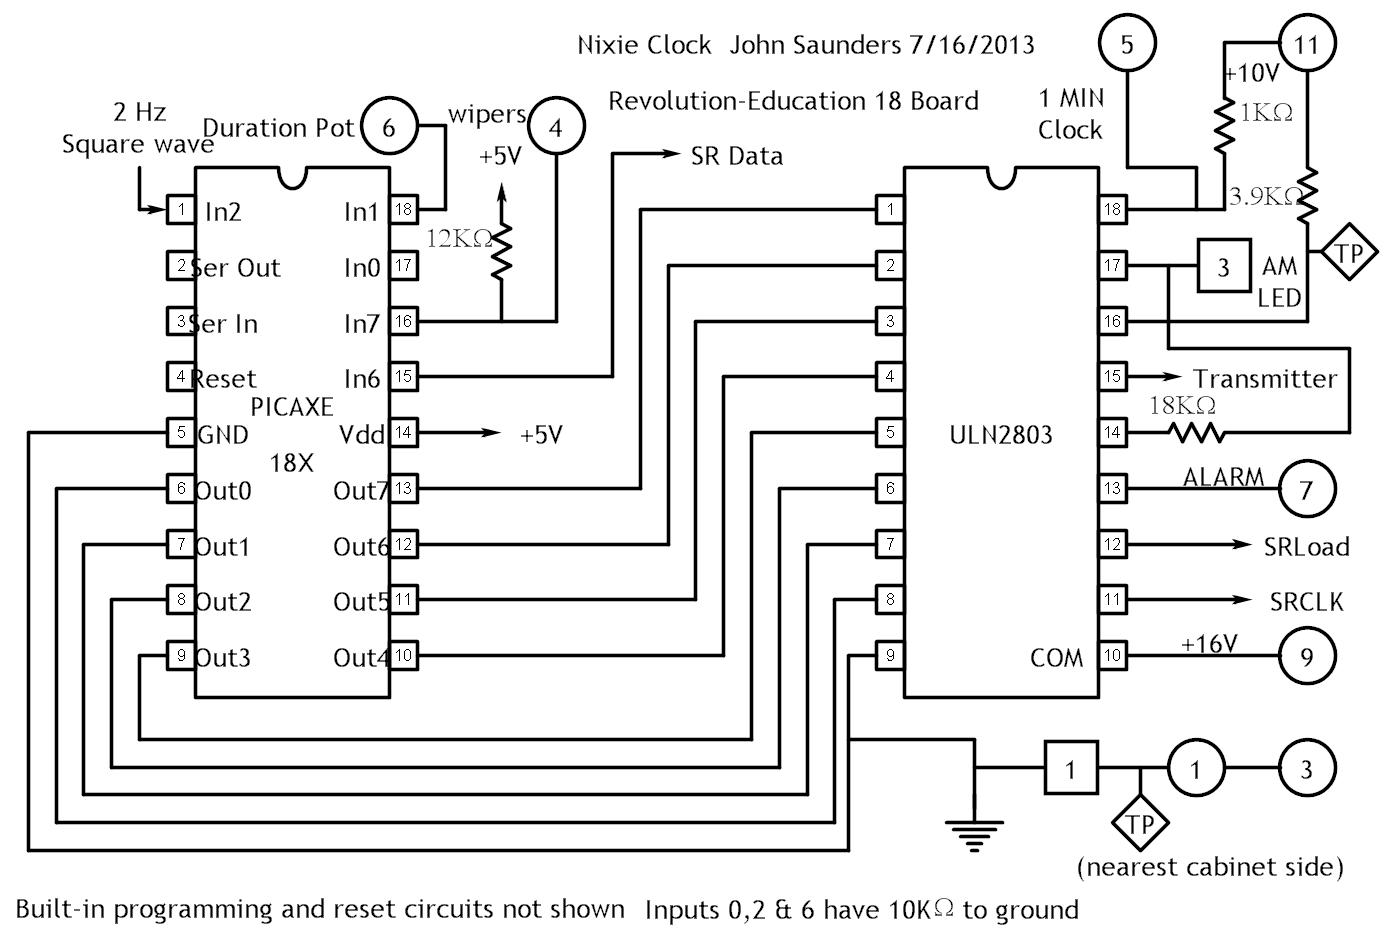 nixie clock circuit diagrams